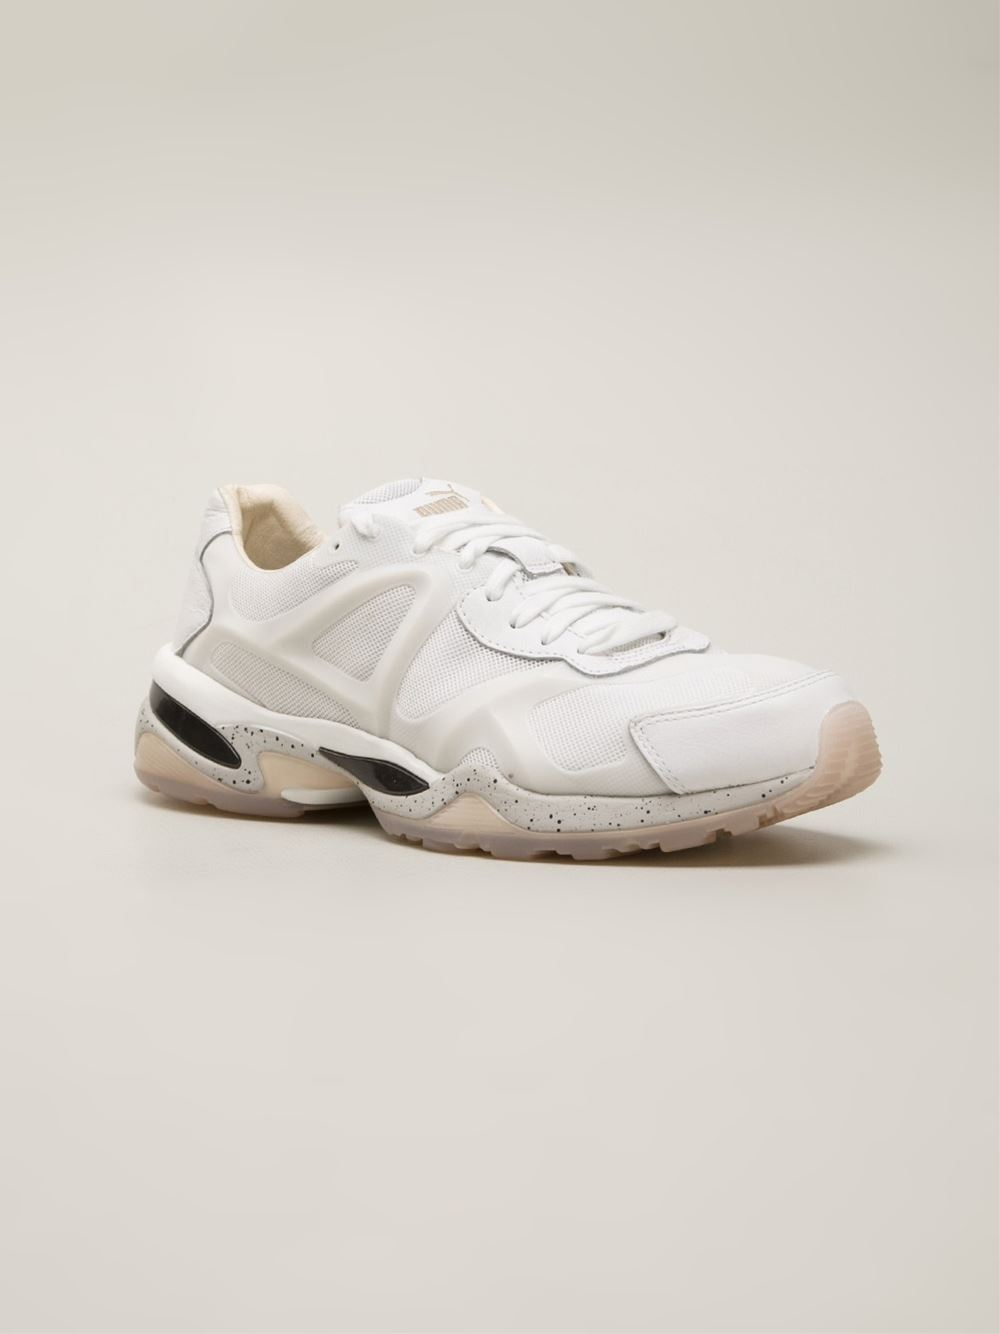 outlet largest supplier Alexander McQueen White Levon Sneakers buy cheap new shopping discounts online visit online YUZL5dljY